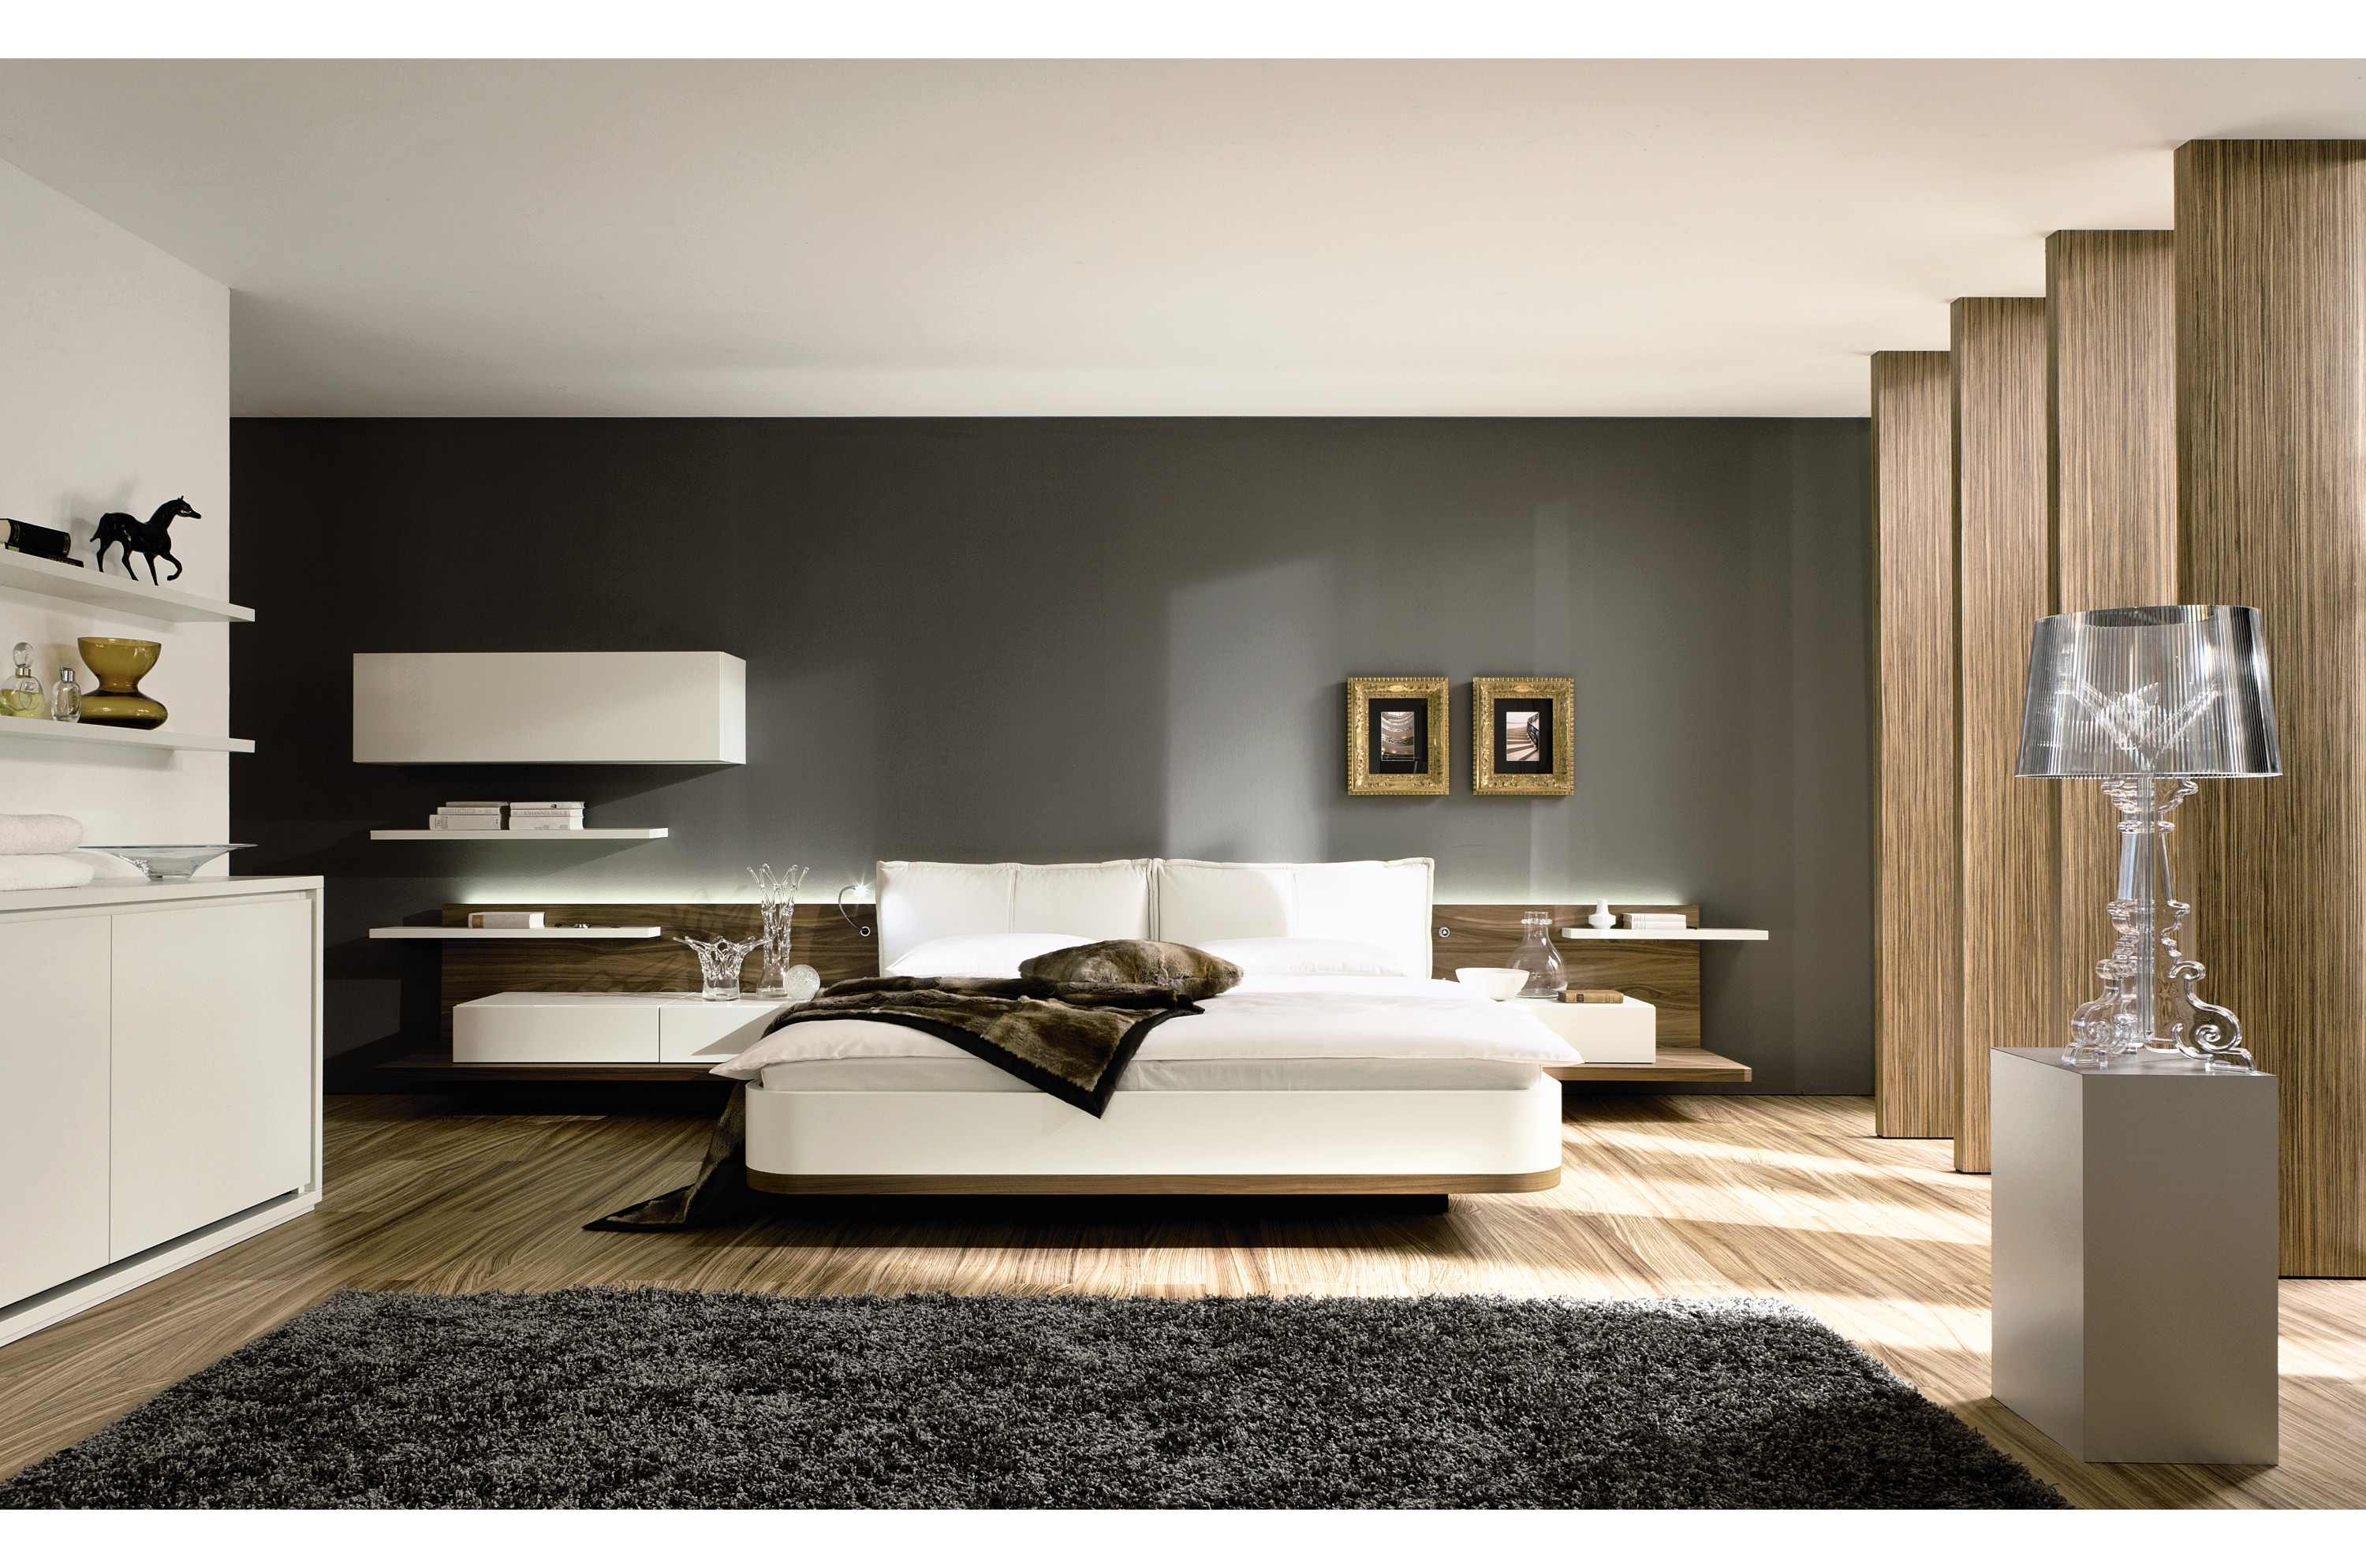 Modern bedroom innovation bedroom ideas interior design for Interior design ideas bedroom